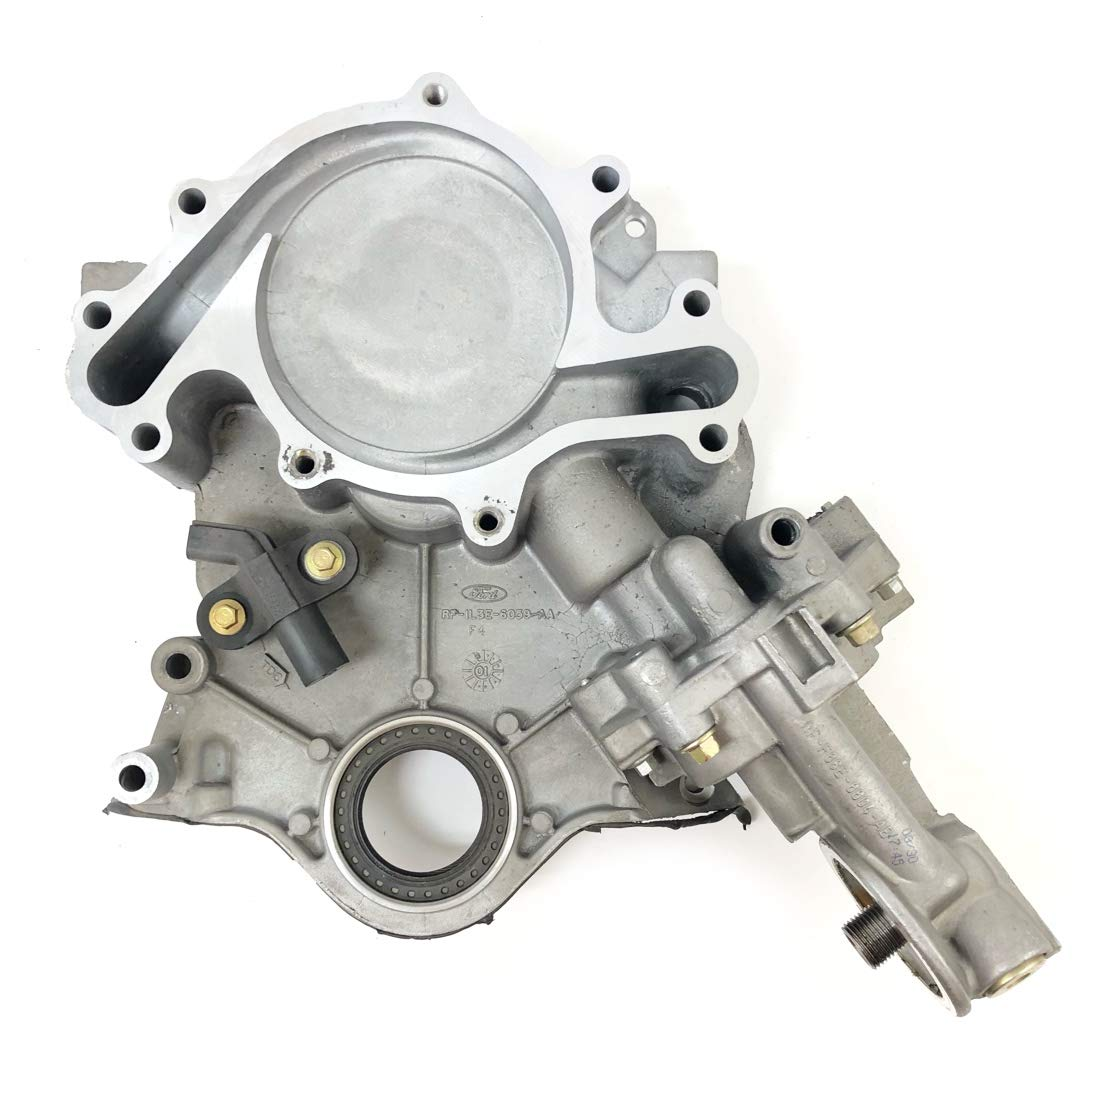 FORD OEM Timing Cover/Oil Pump 3.8L & 4.2L F150, E150, E250, Mustang, Thunderbird, Windstar, Cougar #1L3E #F65E New Pull Off